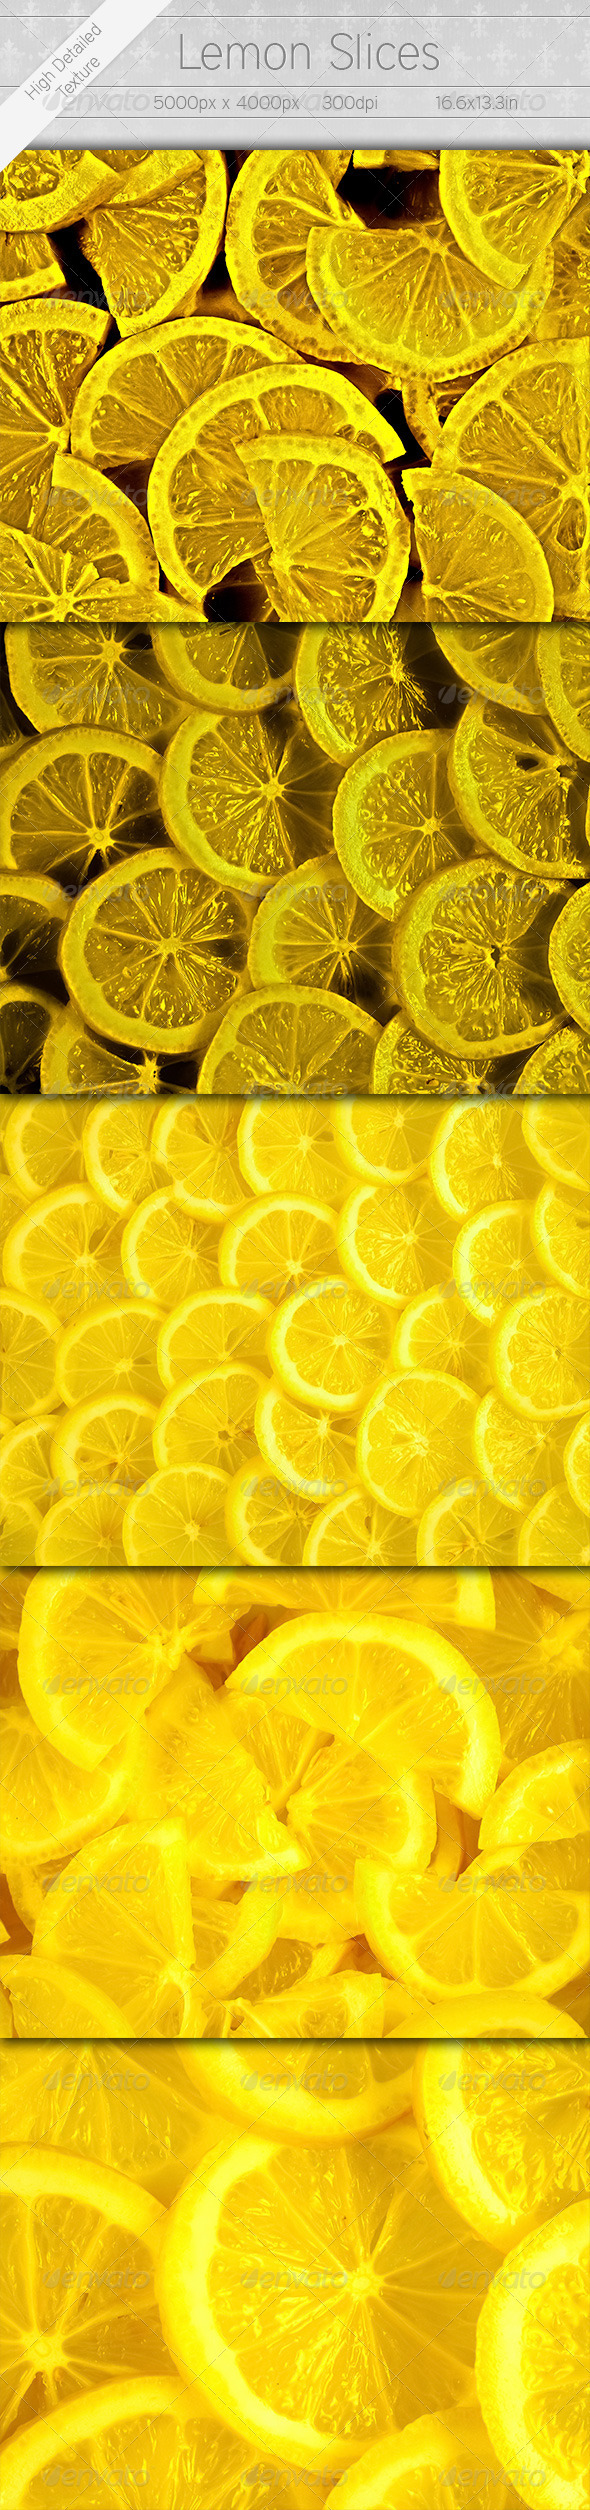 Lemon Slices - Miscellaneous Textures / Fills / Patterns